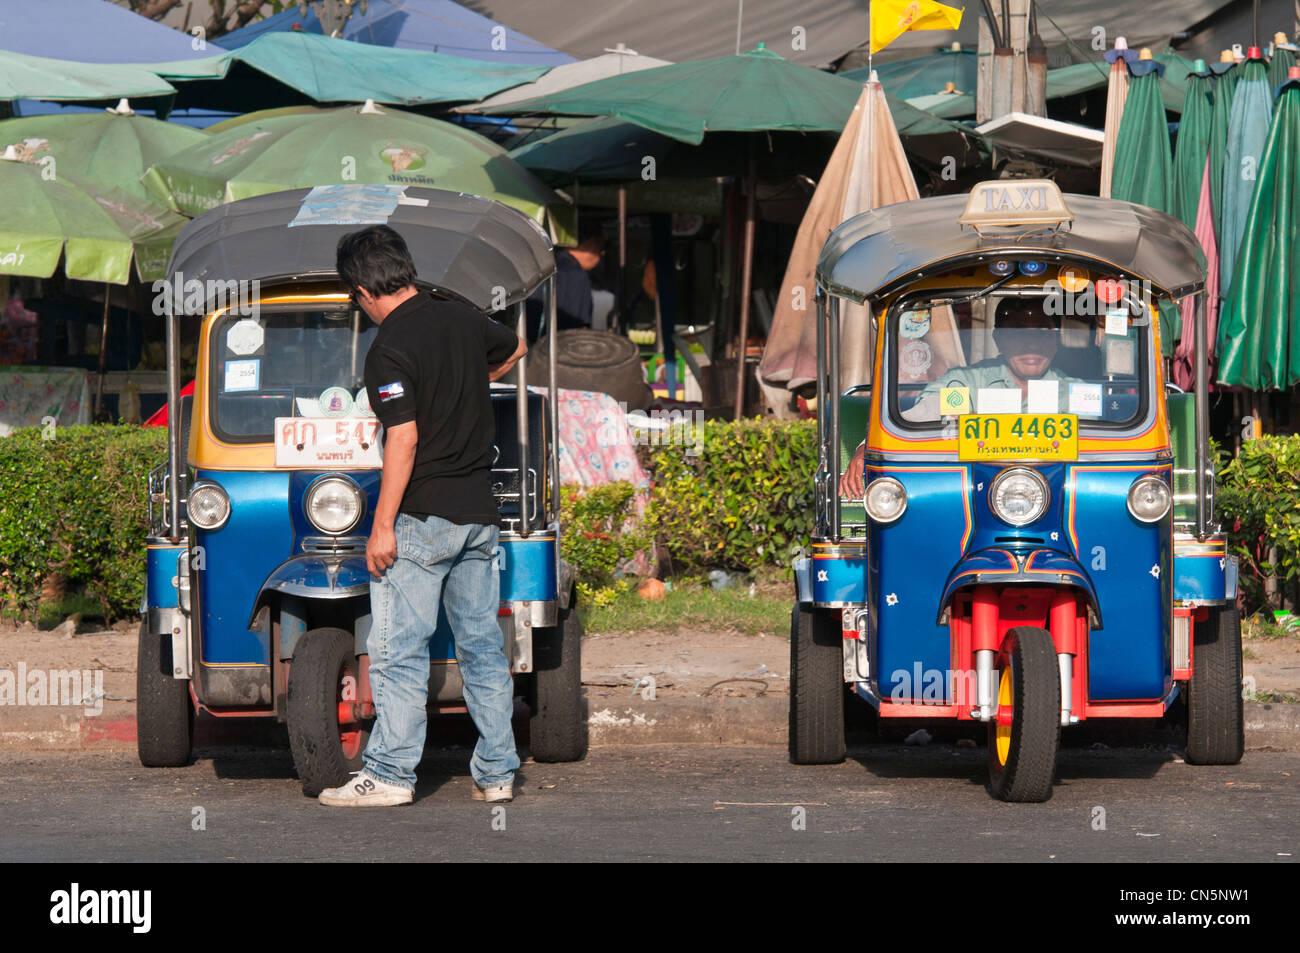 Thailand, Bangkok, the tuk-tuk, a means of transport popular with tourists and Thai - Stock Image